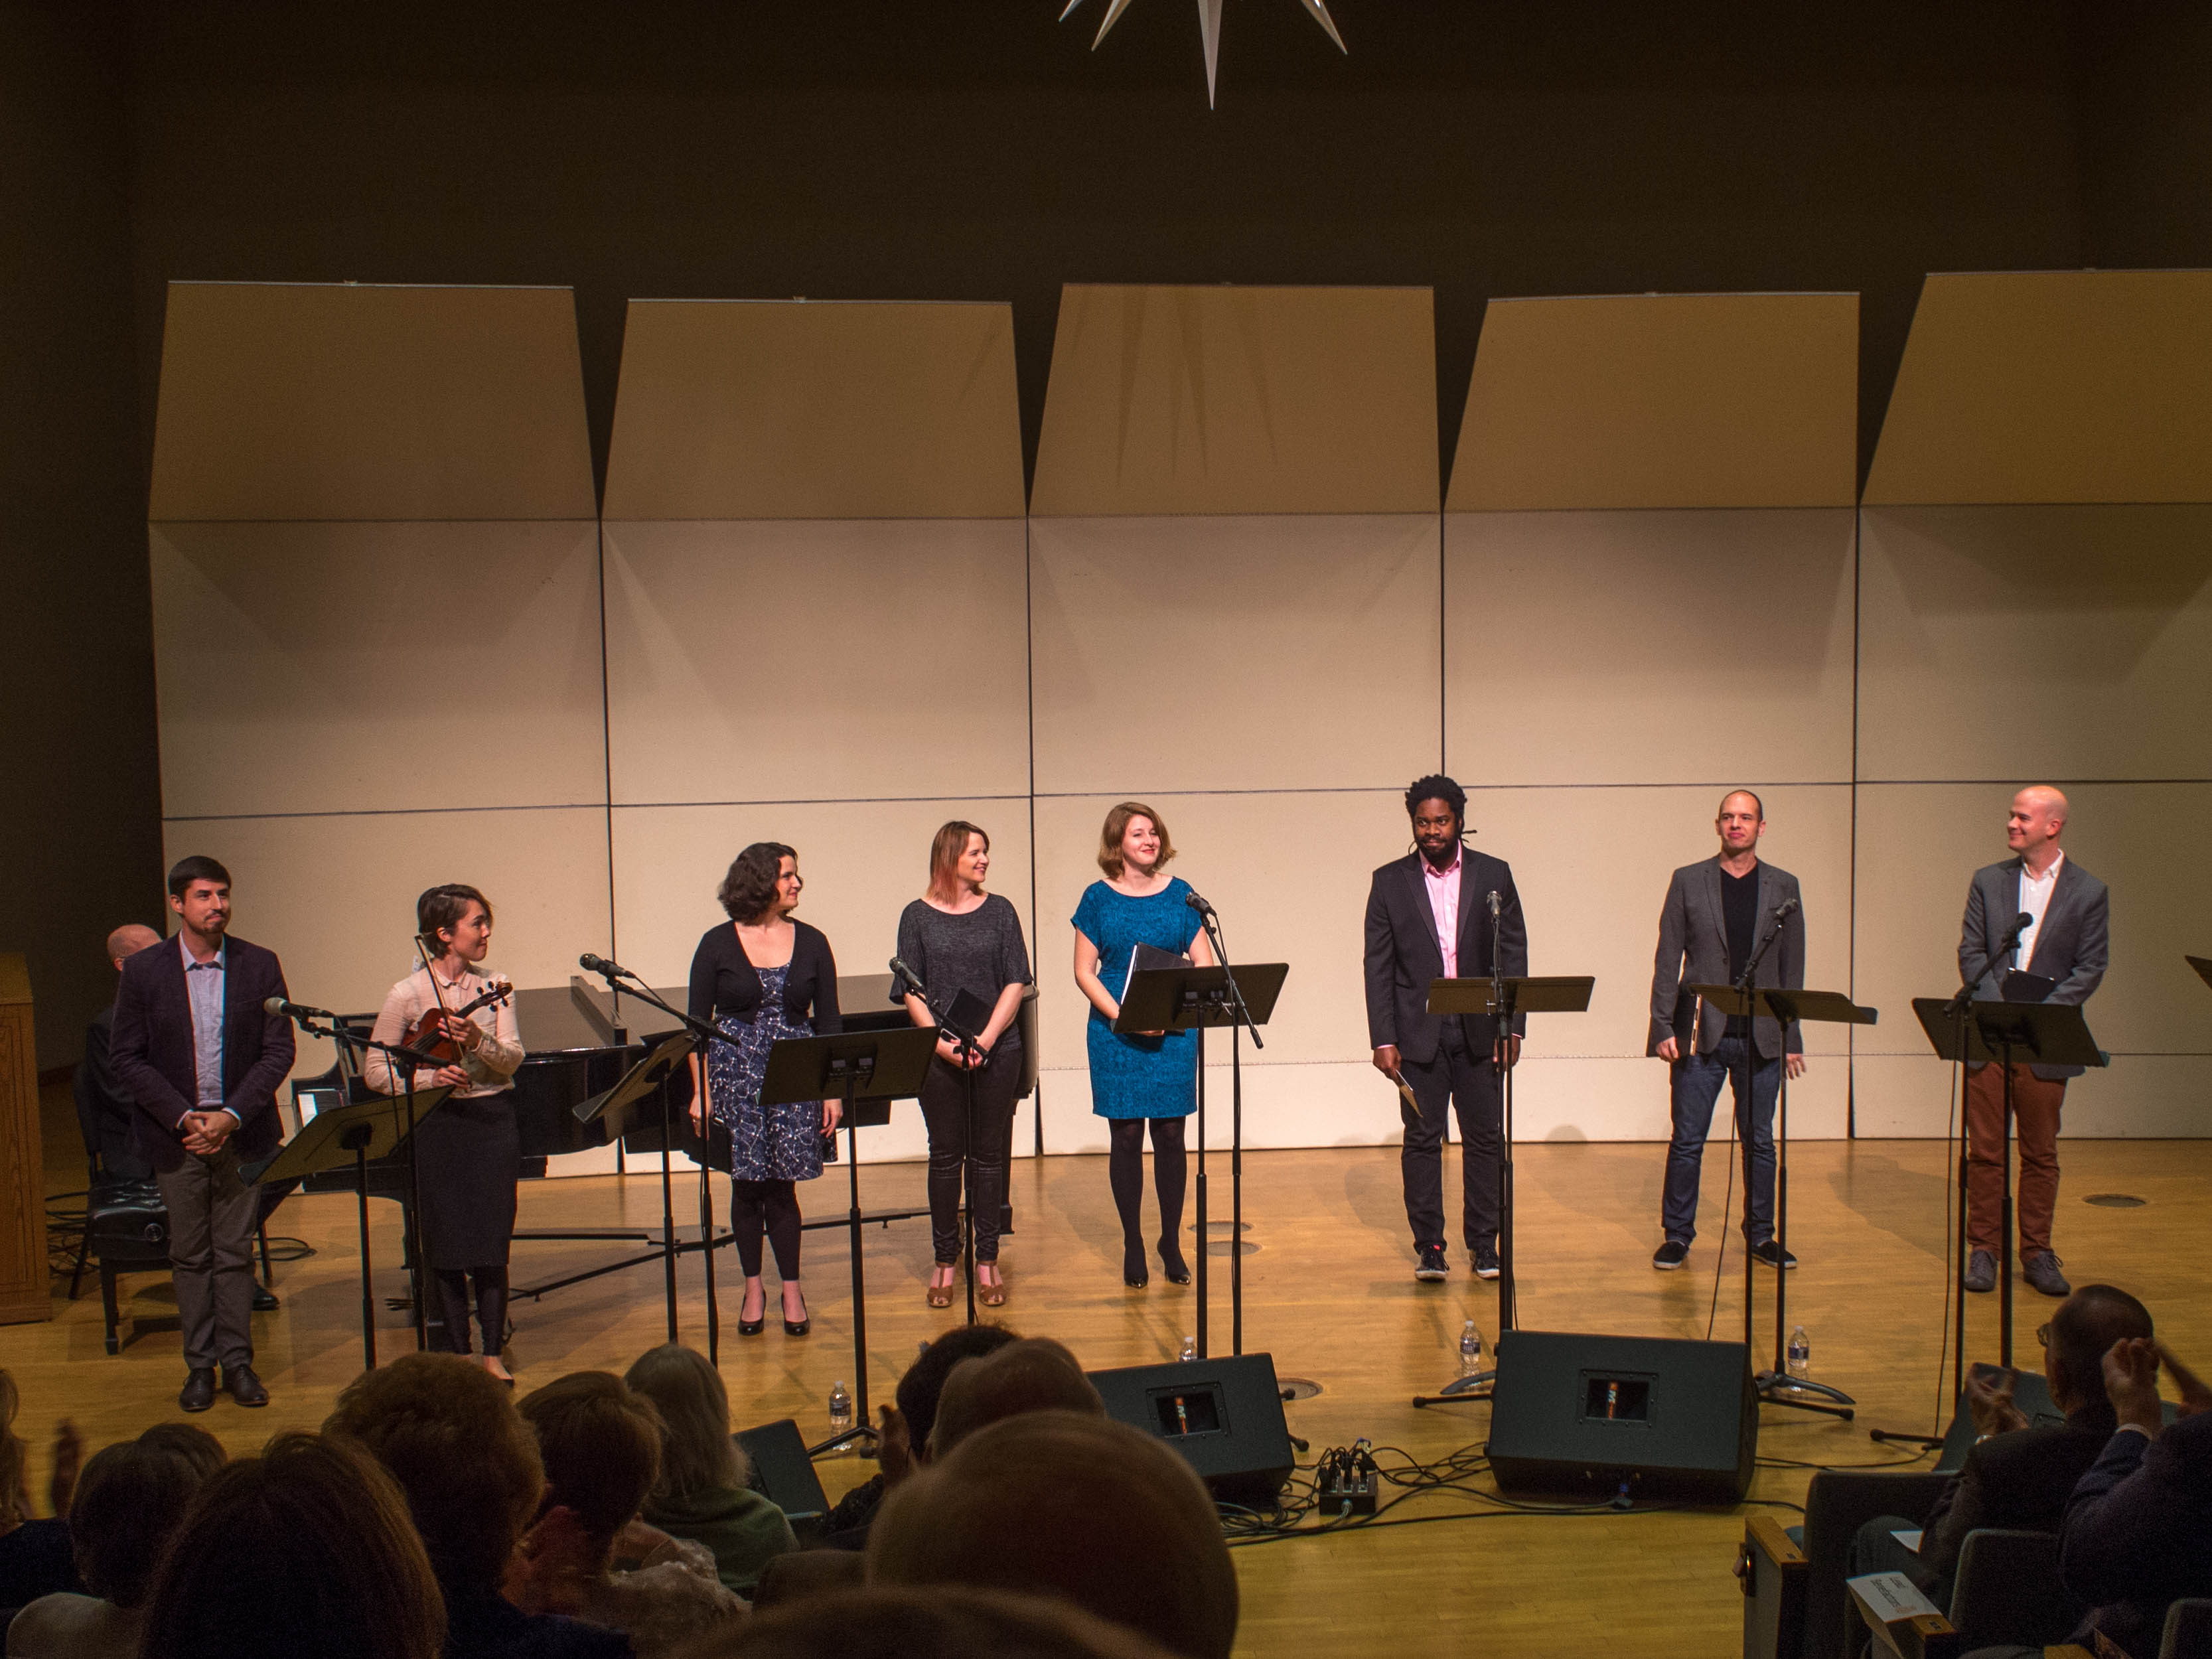 Bach Choir favorite, Dashon Burton (third from the right), receives applause for his Bach aria.  The prodigiously gifted composer, singer, and instrumentalist, Caroline Shaw, is holding her viola.